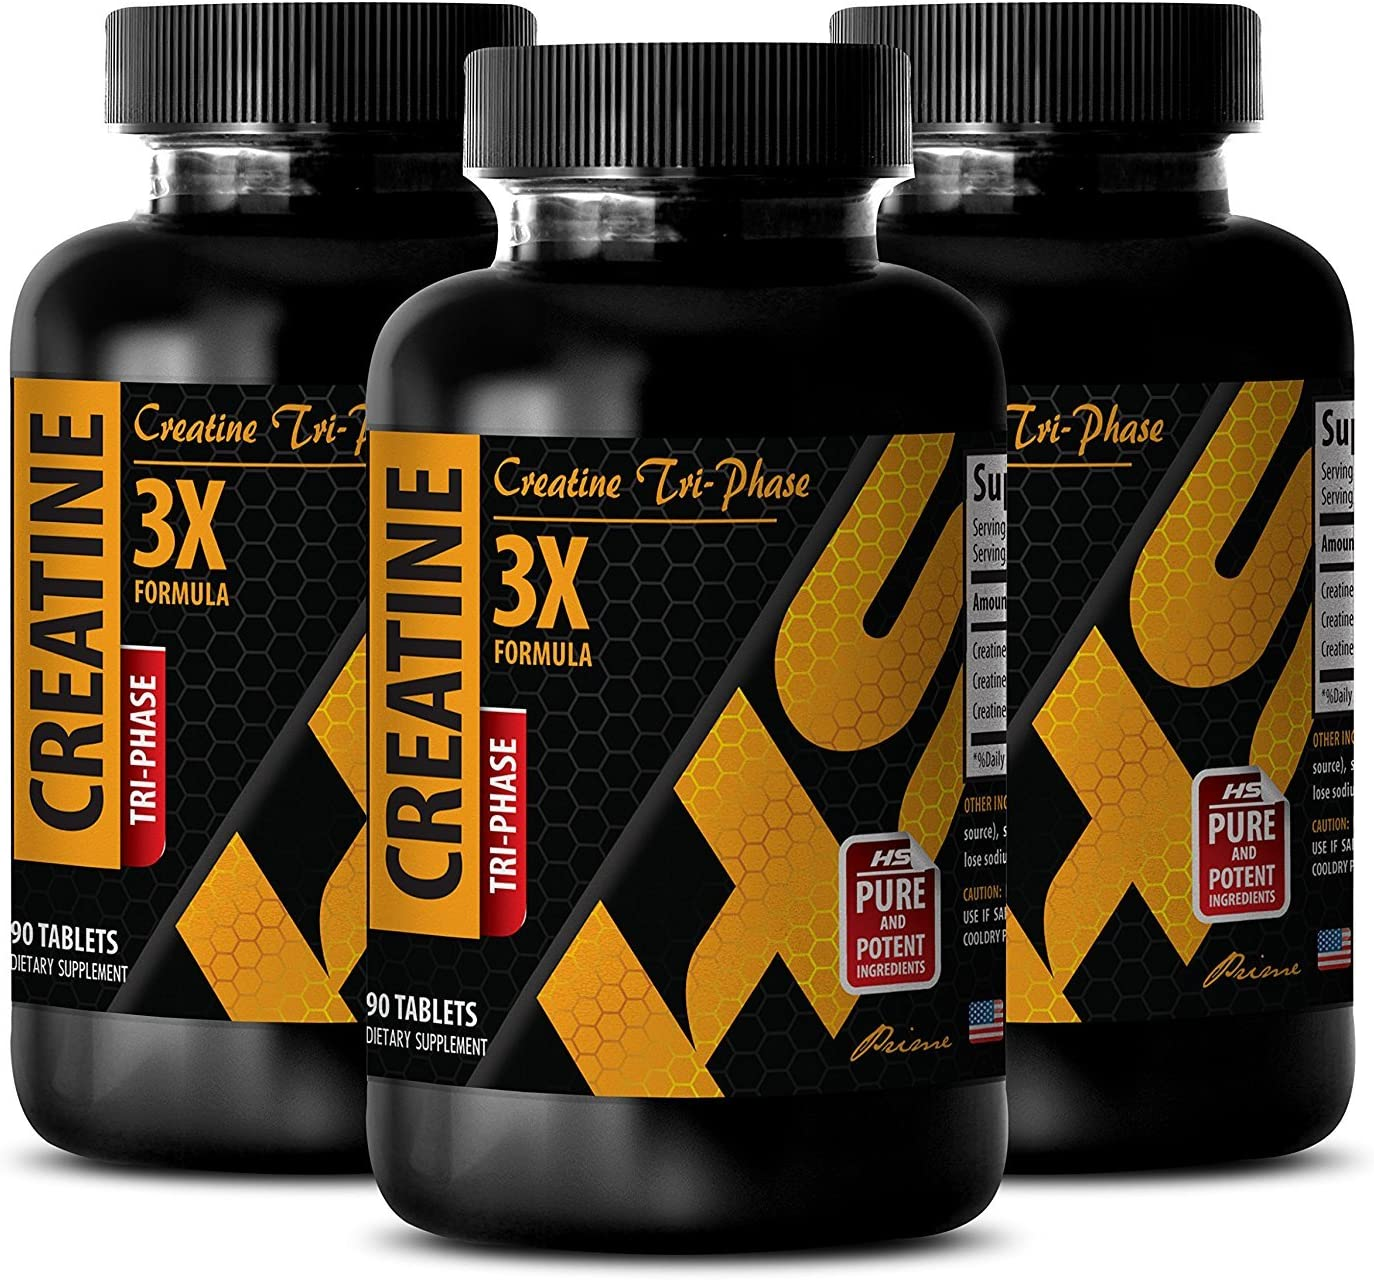 Seasonal Wrap Introduction Muscle Mass pre Workout - CREATINE TRI-Phase 3X Cheap mail order specialty store Crea Formula